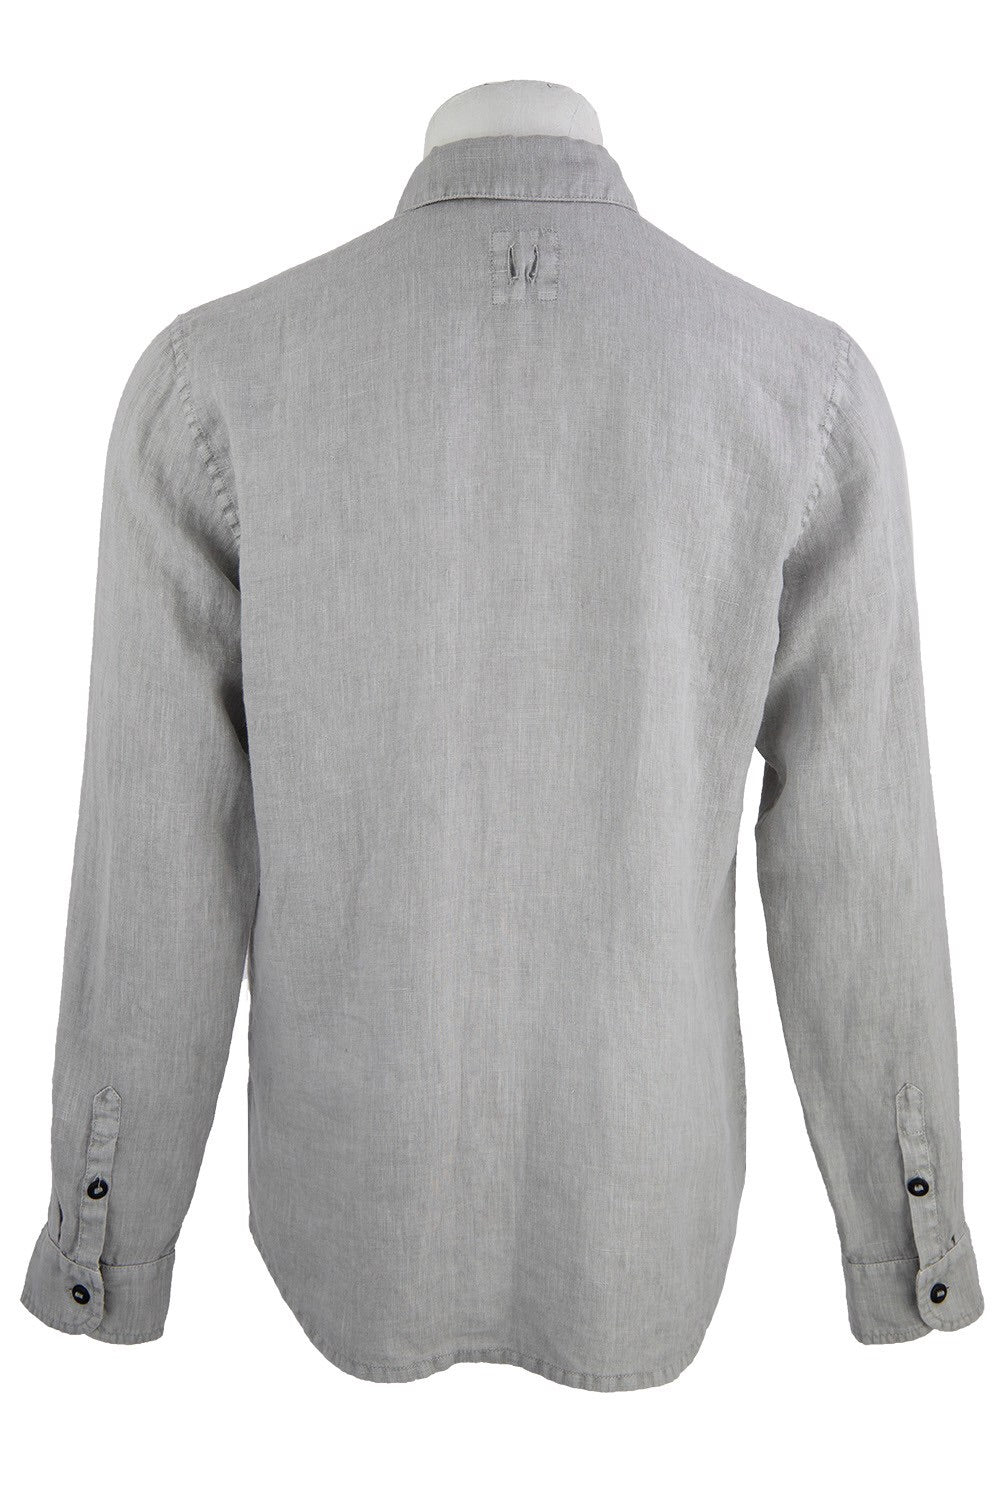 Hannes Roether Linen Shirt